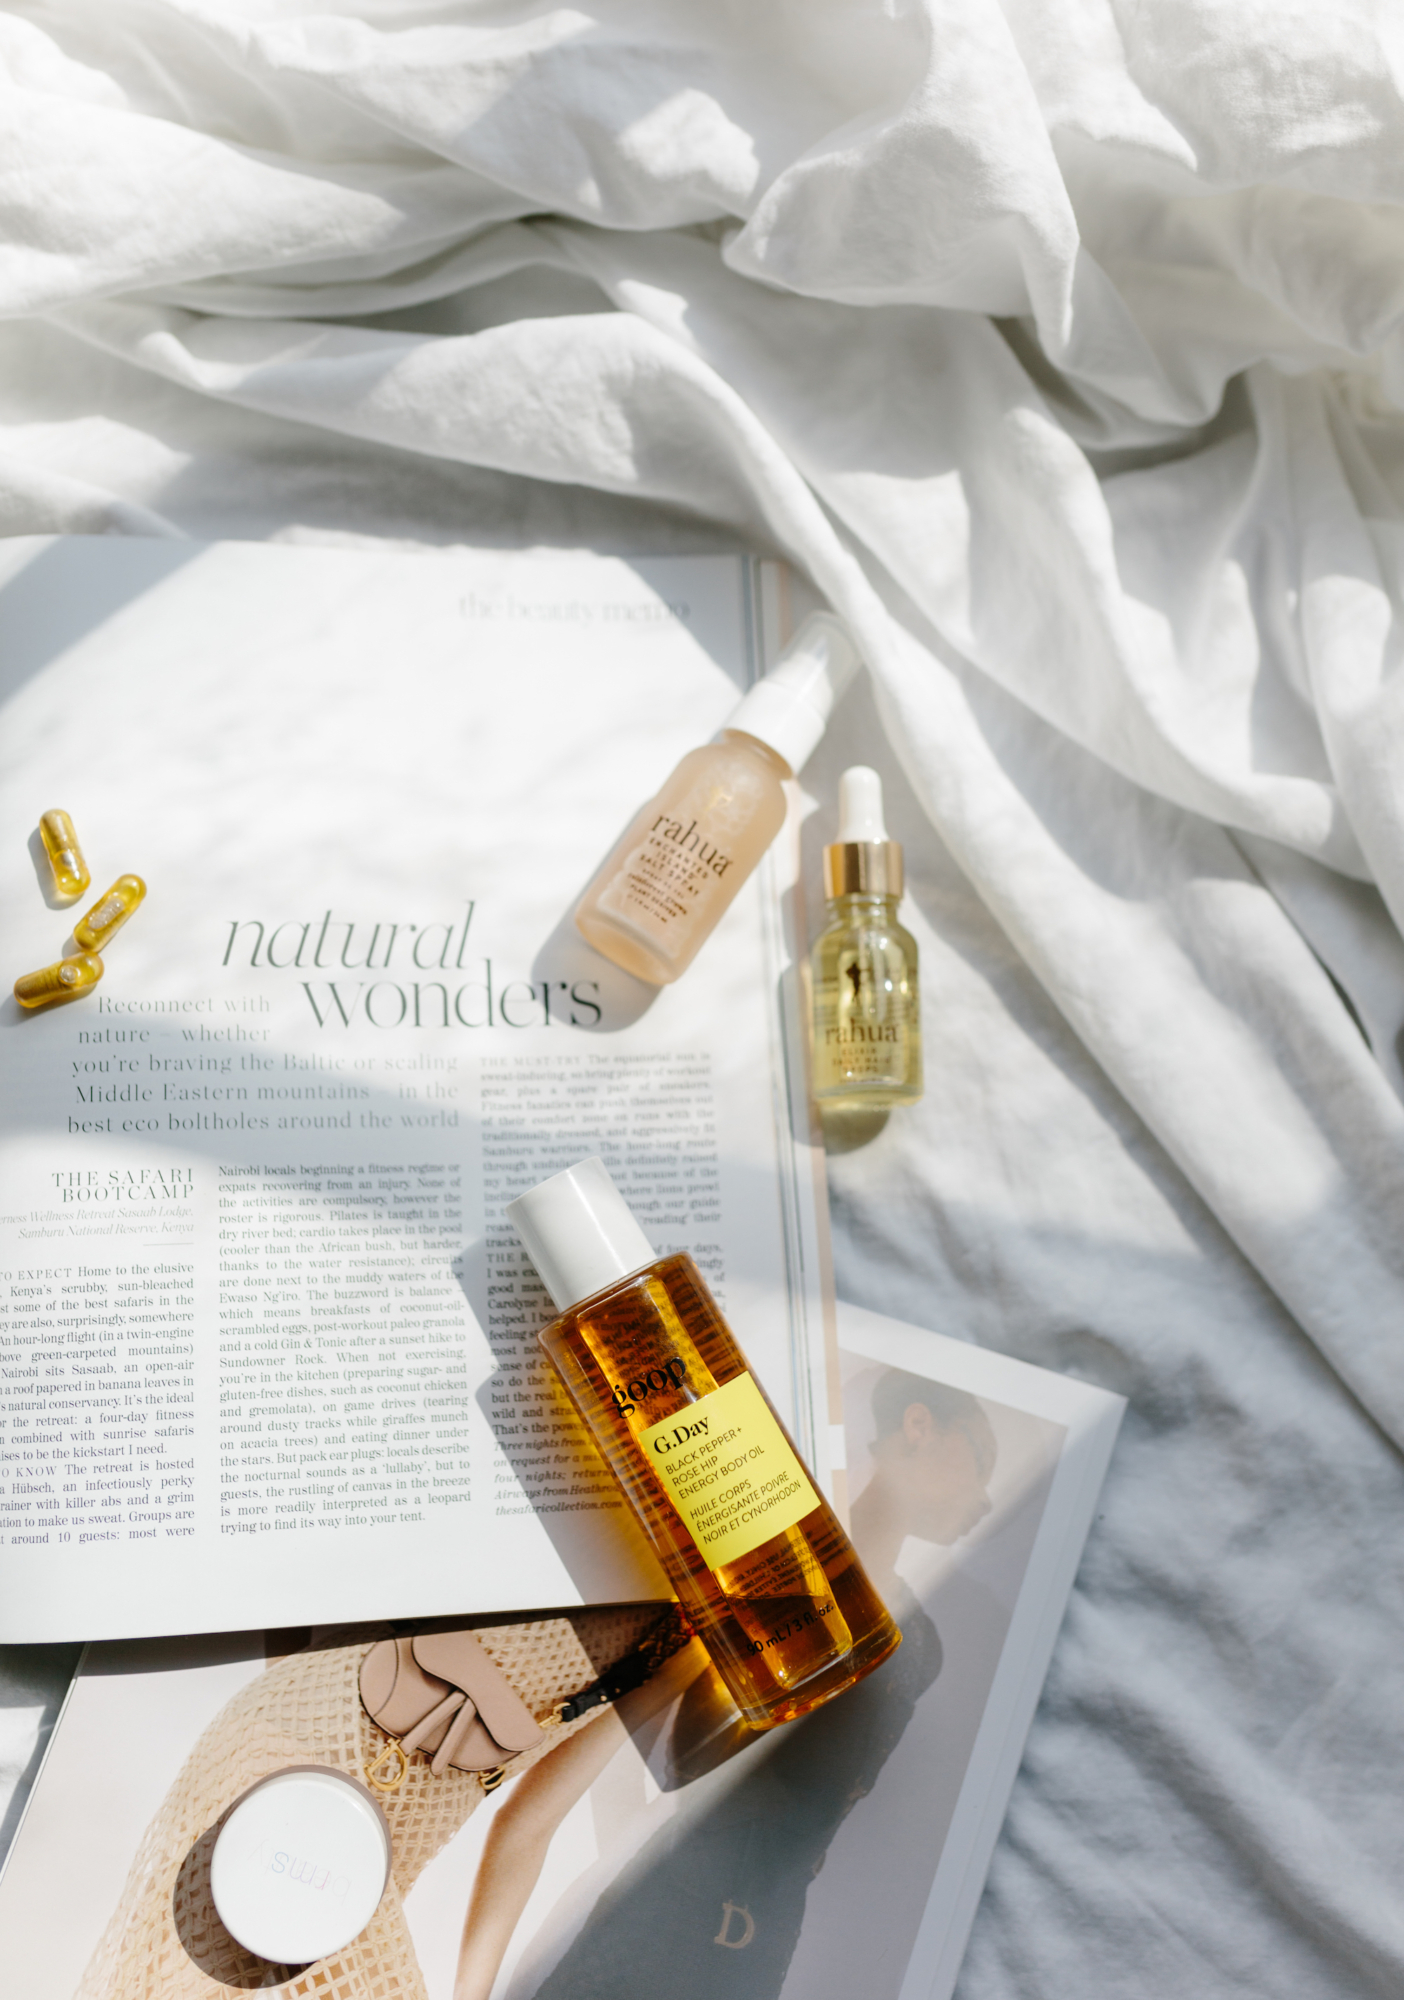 THE SPRING CLEAN BEAUTY EDIT – A Dash of Details